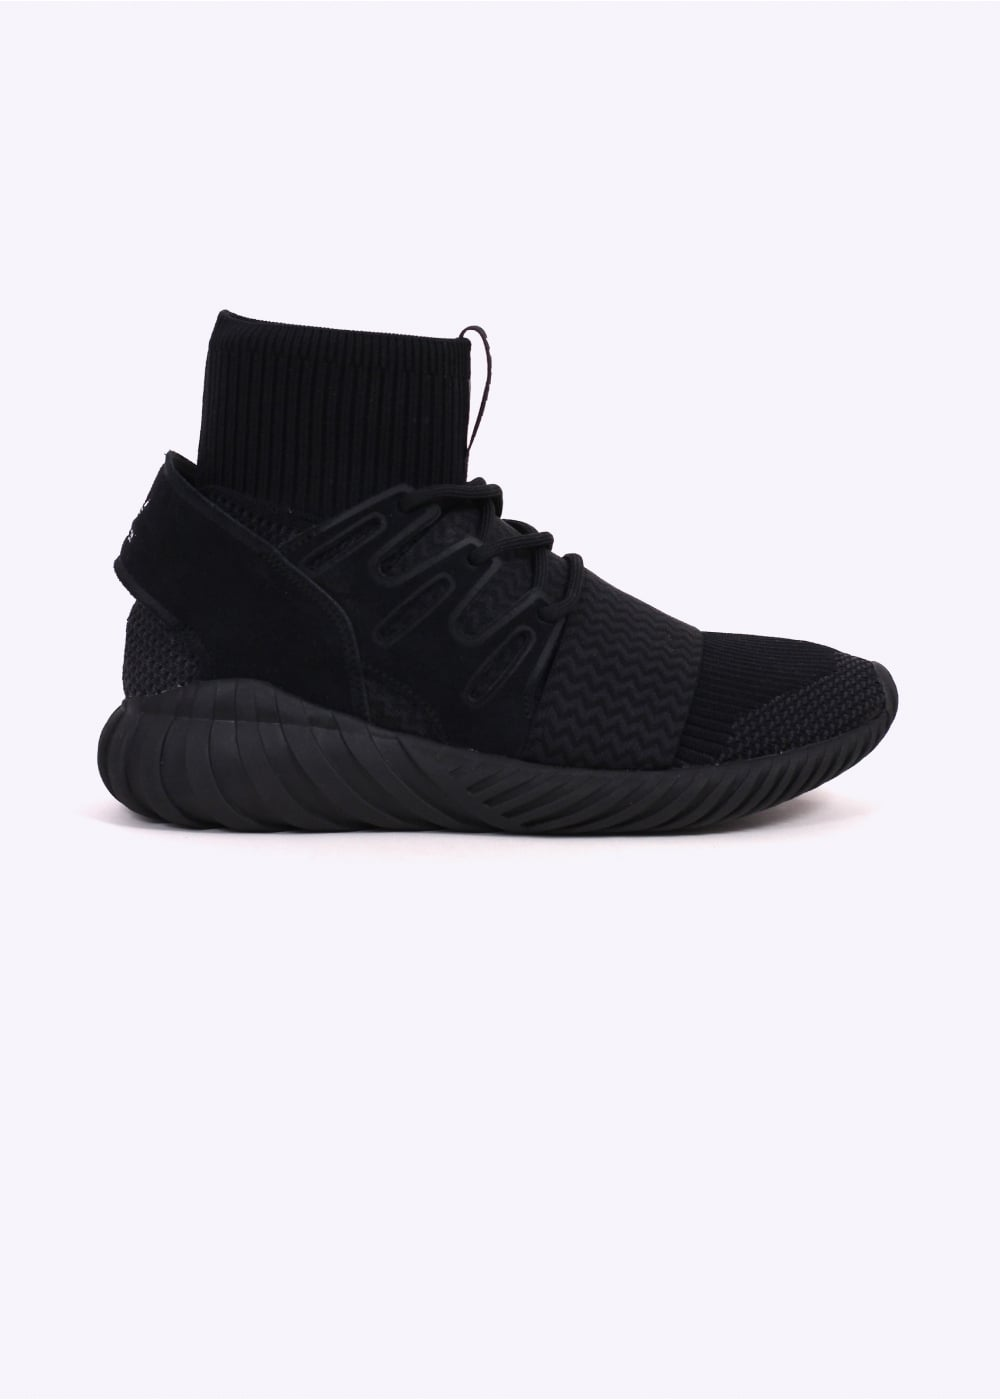 adidas Originals Footwear Tubular Doom PK Primeknit - Core Black ... c4c67ee8c